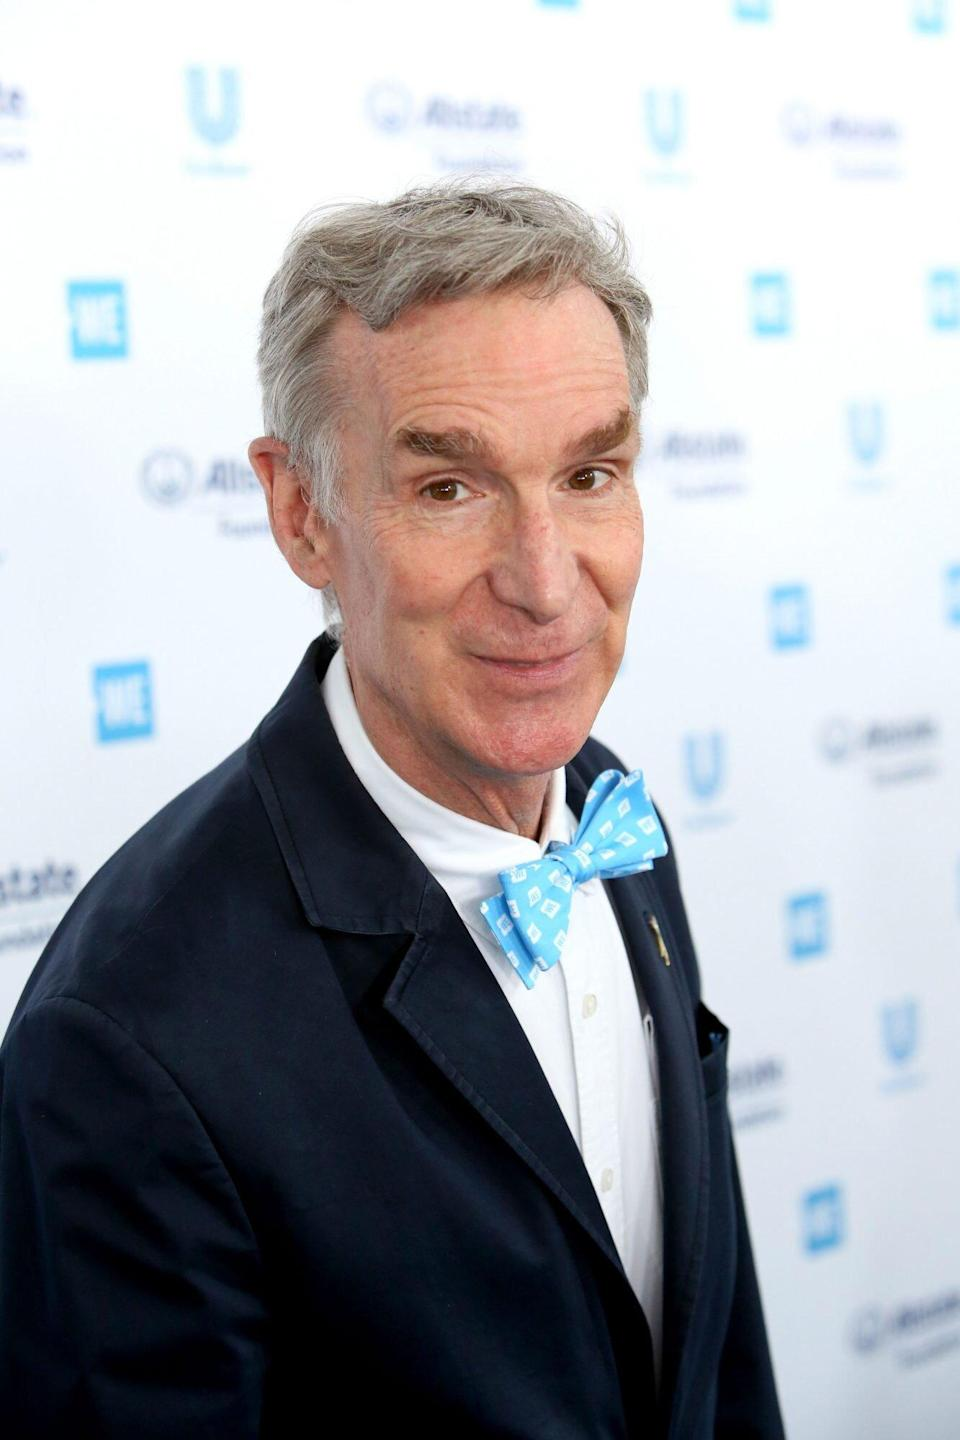 Everything to Know About Dandruff, According to Bill Nye the Science Guy